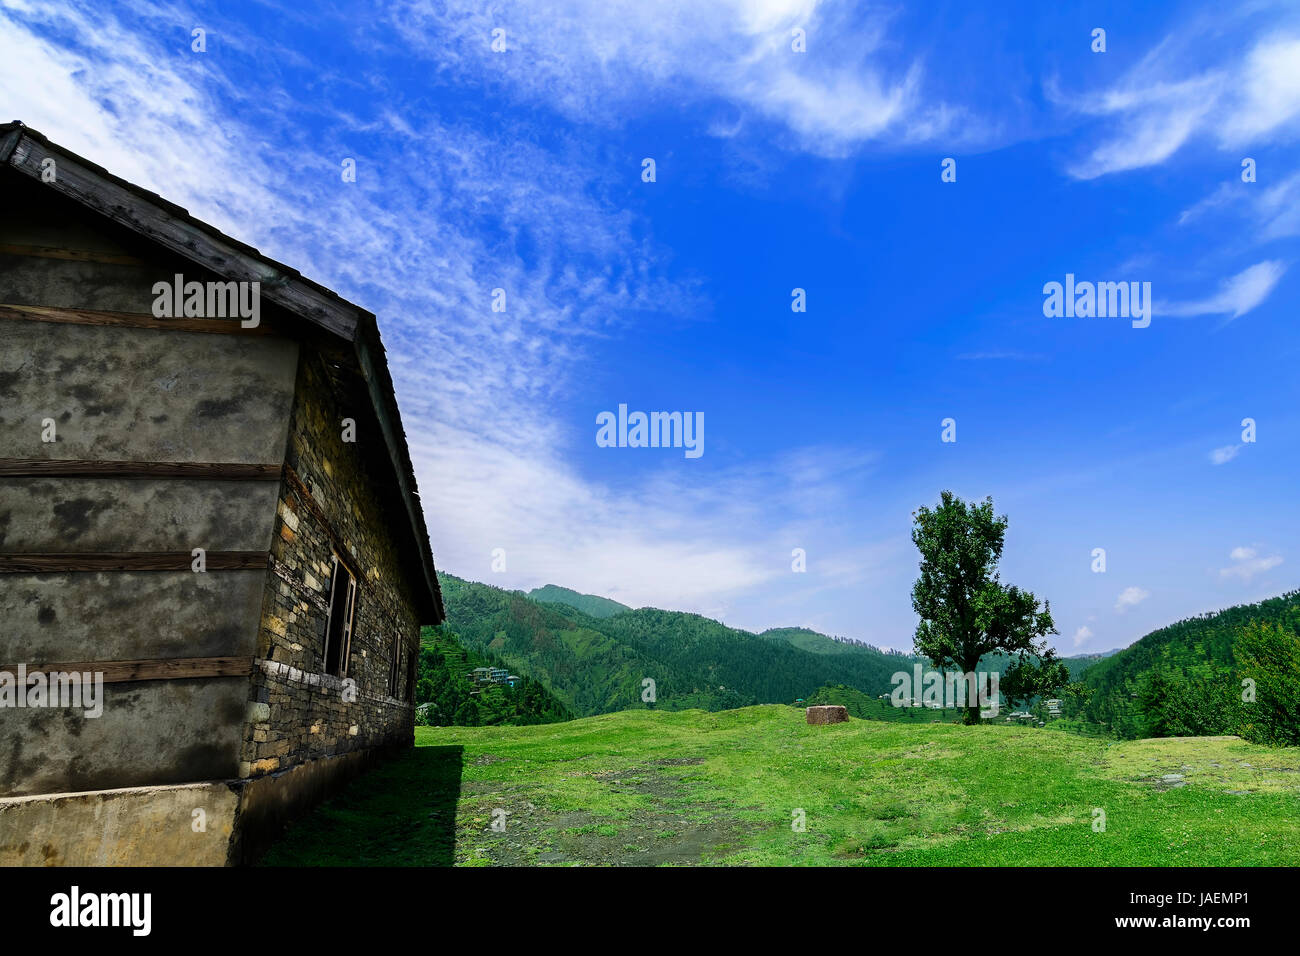 Idyllic and beautiful landscape with an old abandoned wooden house in the Janjehli valley, Himachal Pradesh - Stock Image